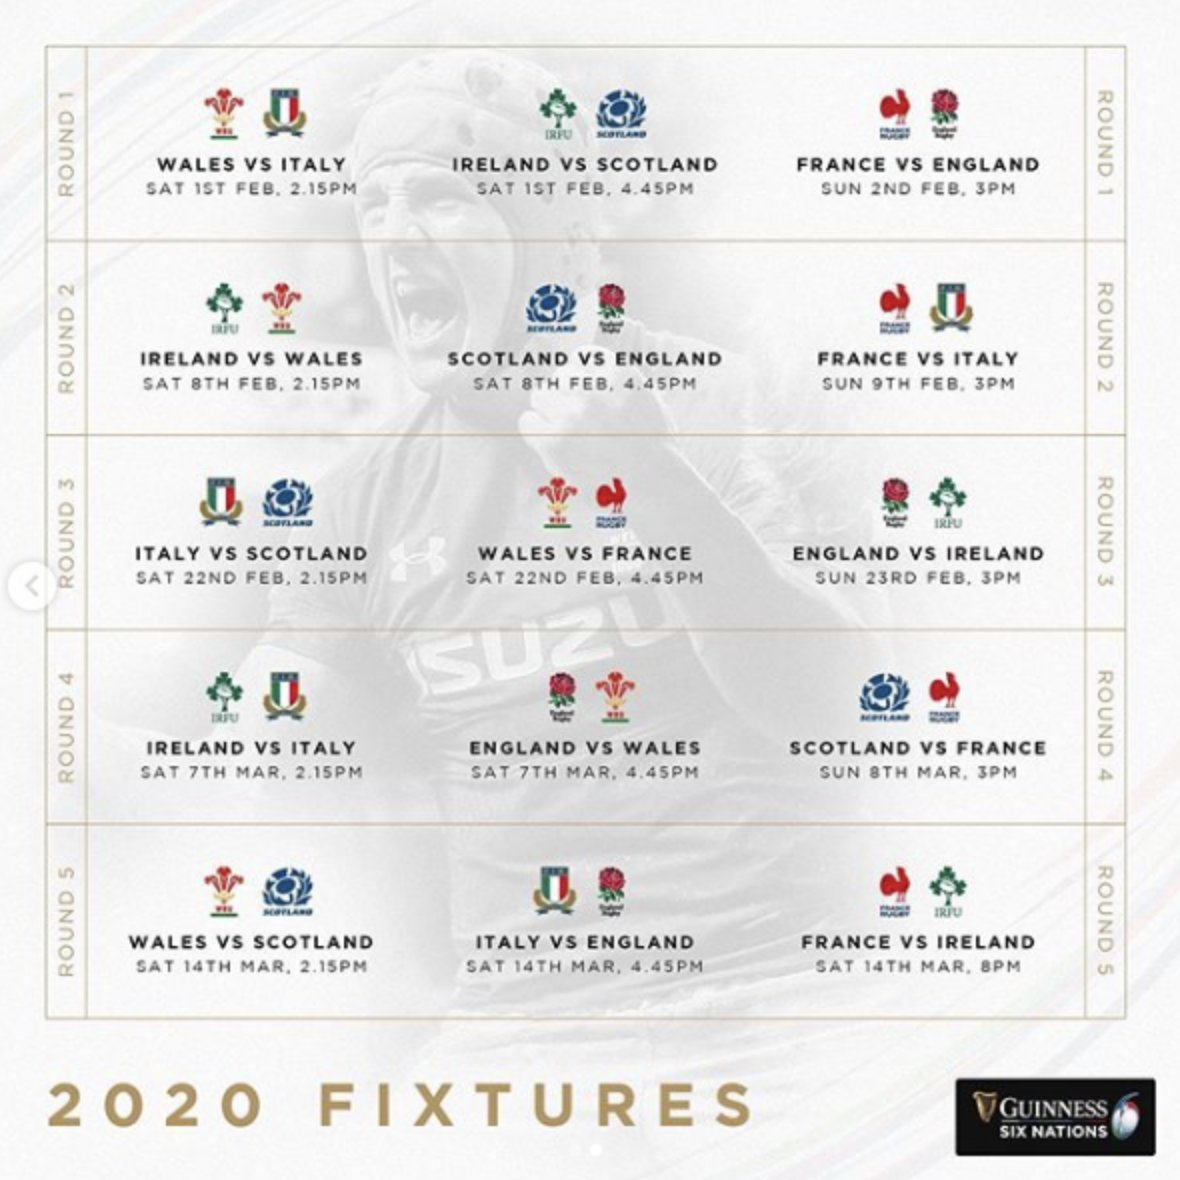 Good luck to all teams competing in the Six Nations tournament. What are your predictions?